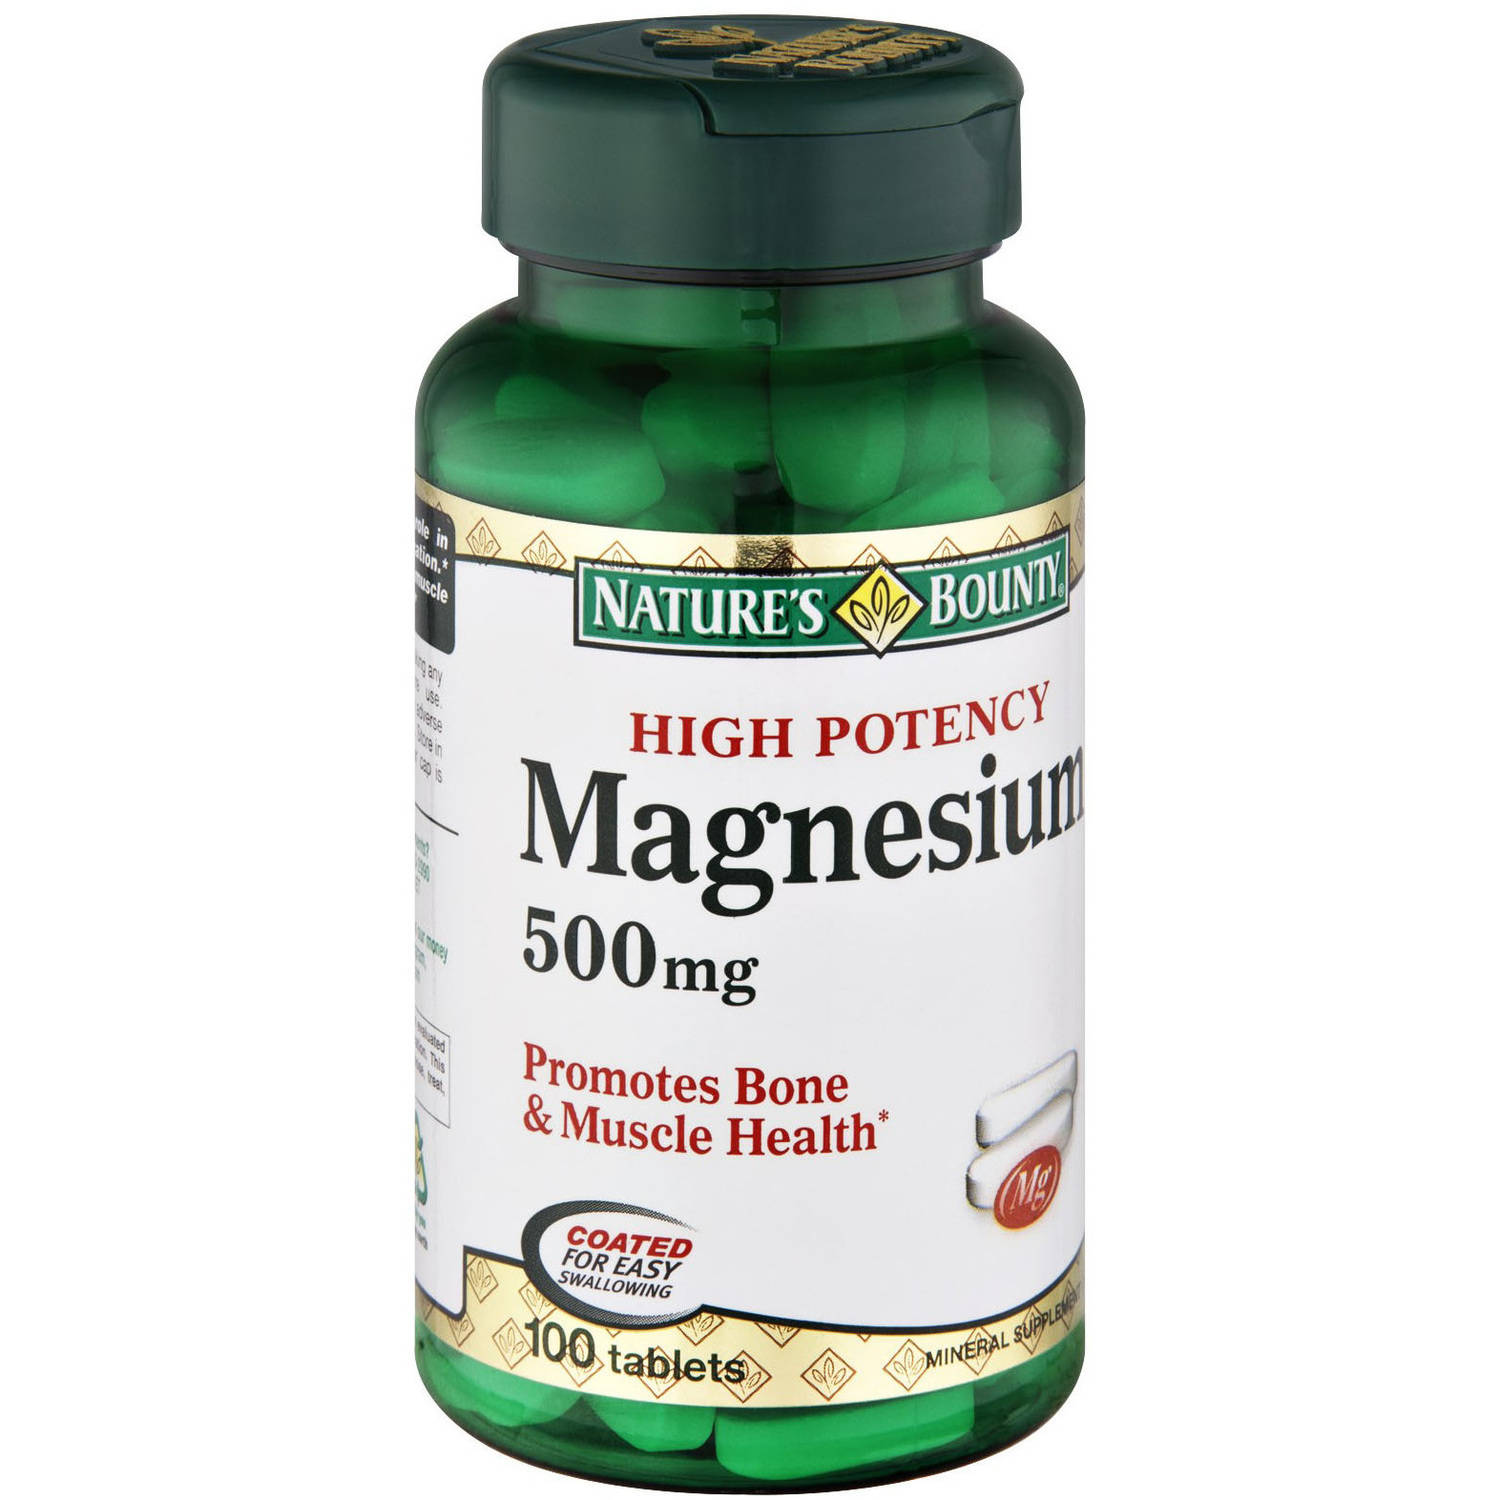 Nature's Bounty High Potency Magnesium 500 mg, 100 CT (Pack of 3)